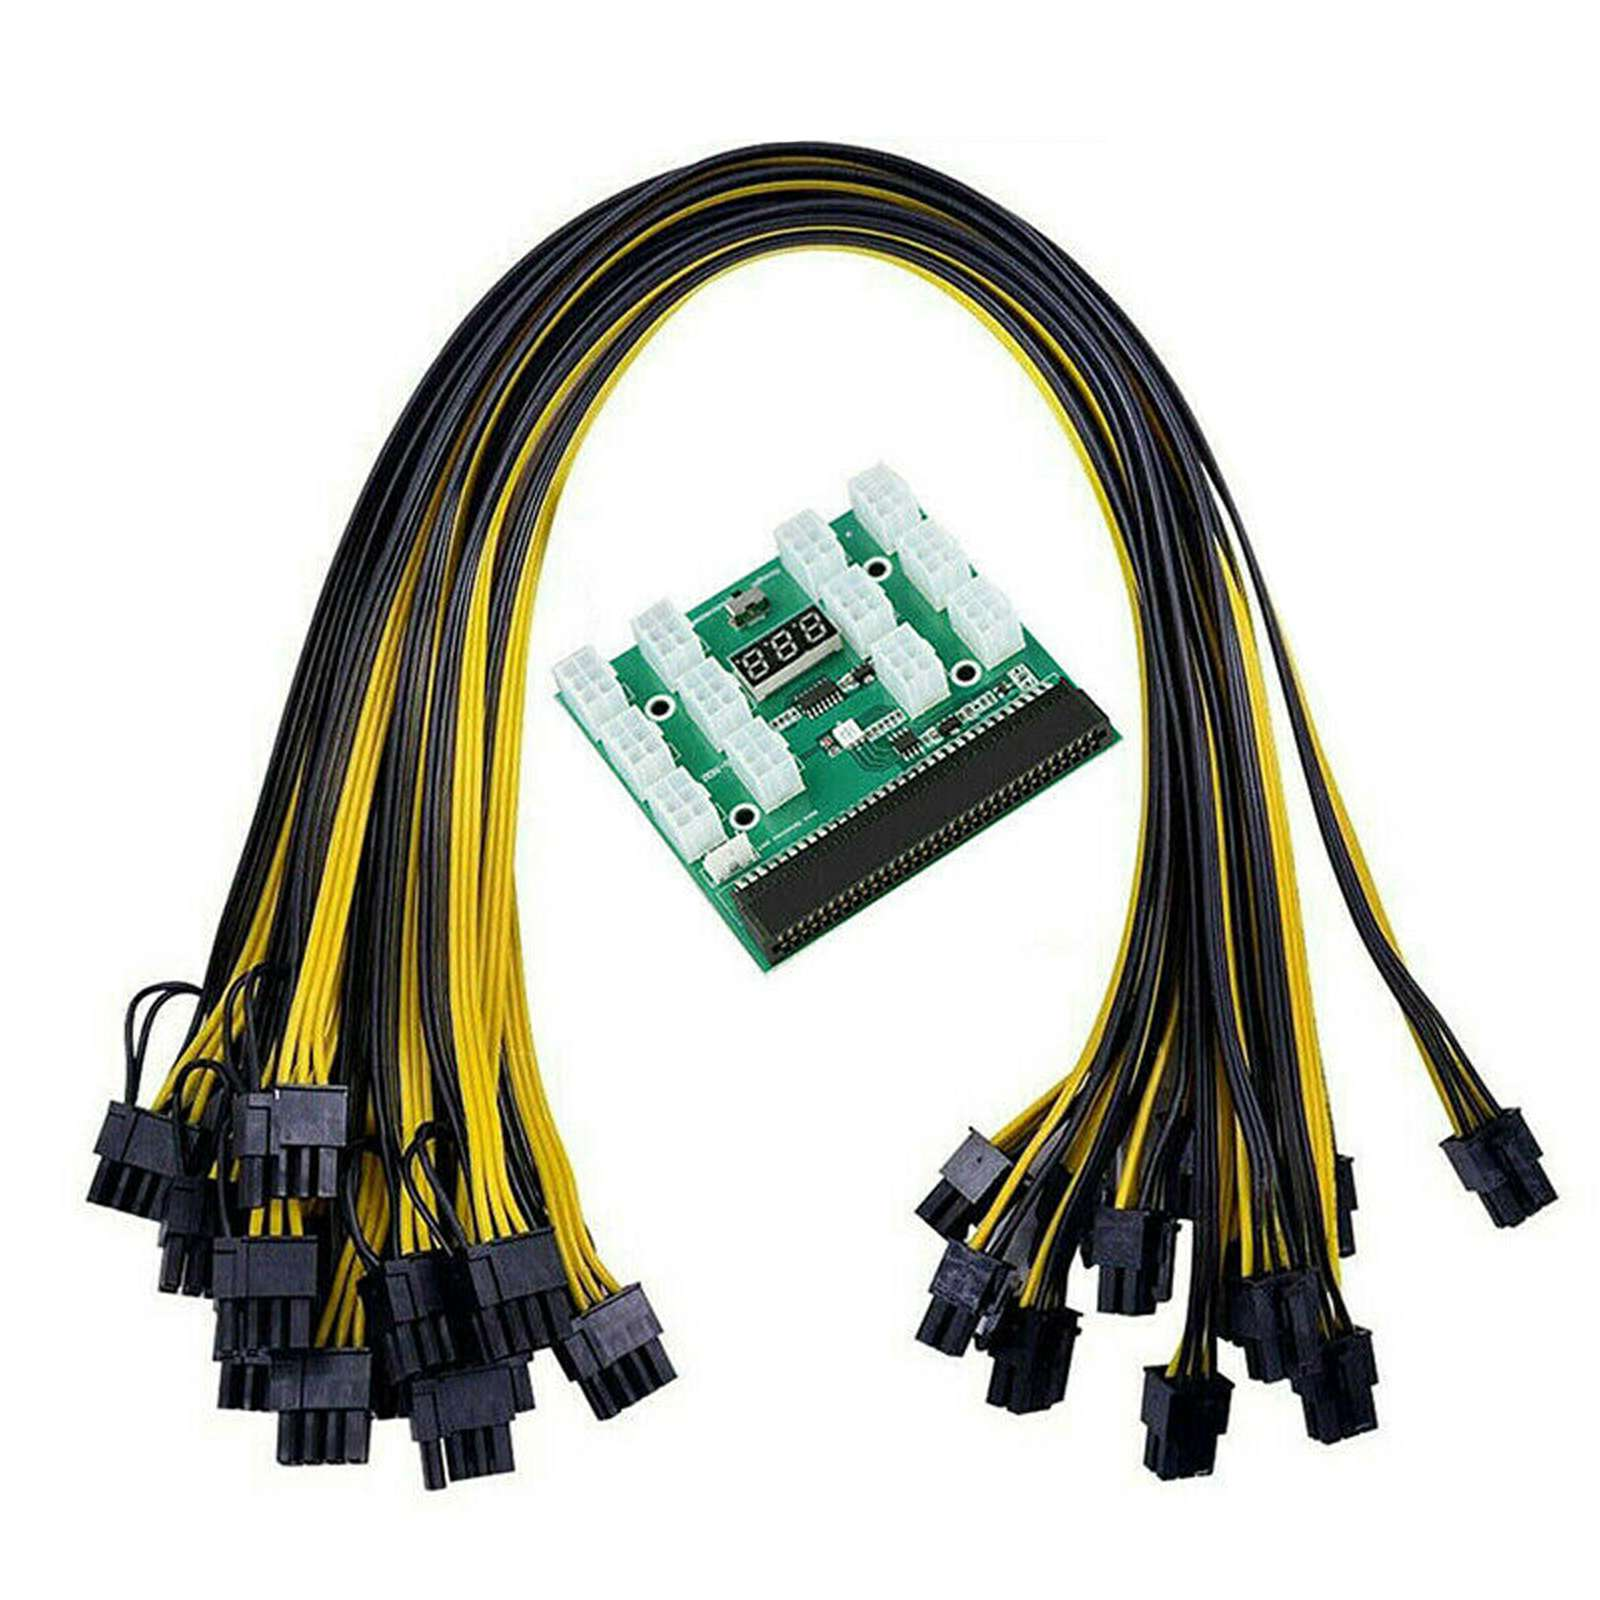 power module breakout board for hp 750w 1200w psu server power conversion 12pcs 6pin to 8pin 18awg power cable for btc Breakout Board Server Adapter PSU Power Supply HP 1200W GPU Mining W/ Cables for DPS-1200FB A DPS-1200QB A PS-2751-LF-1F